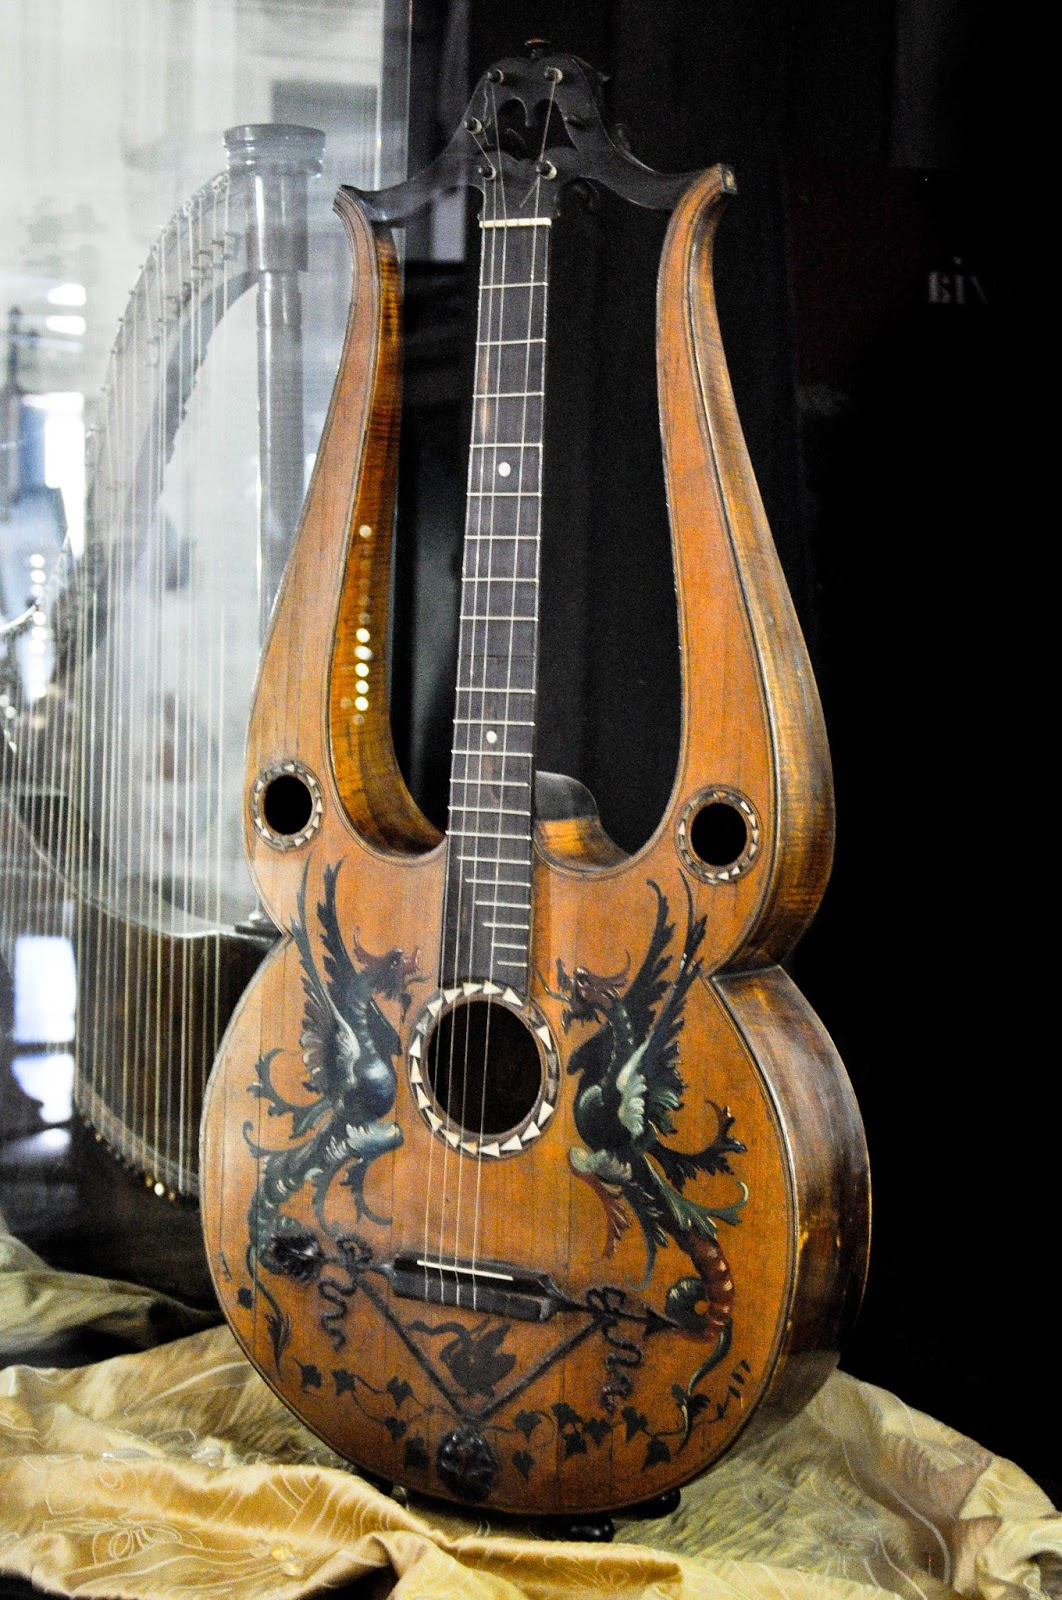 Guitar lyra from 1815, Museum of the Music, Venice, Italy